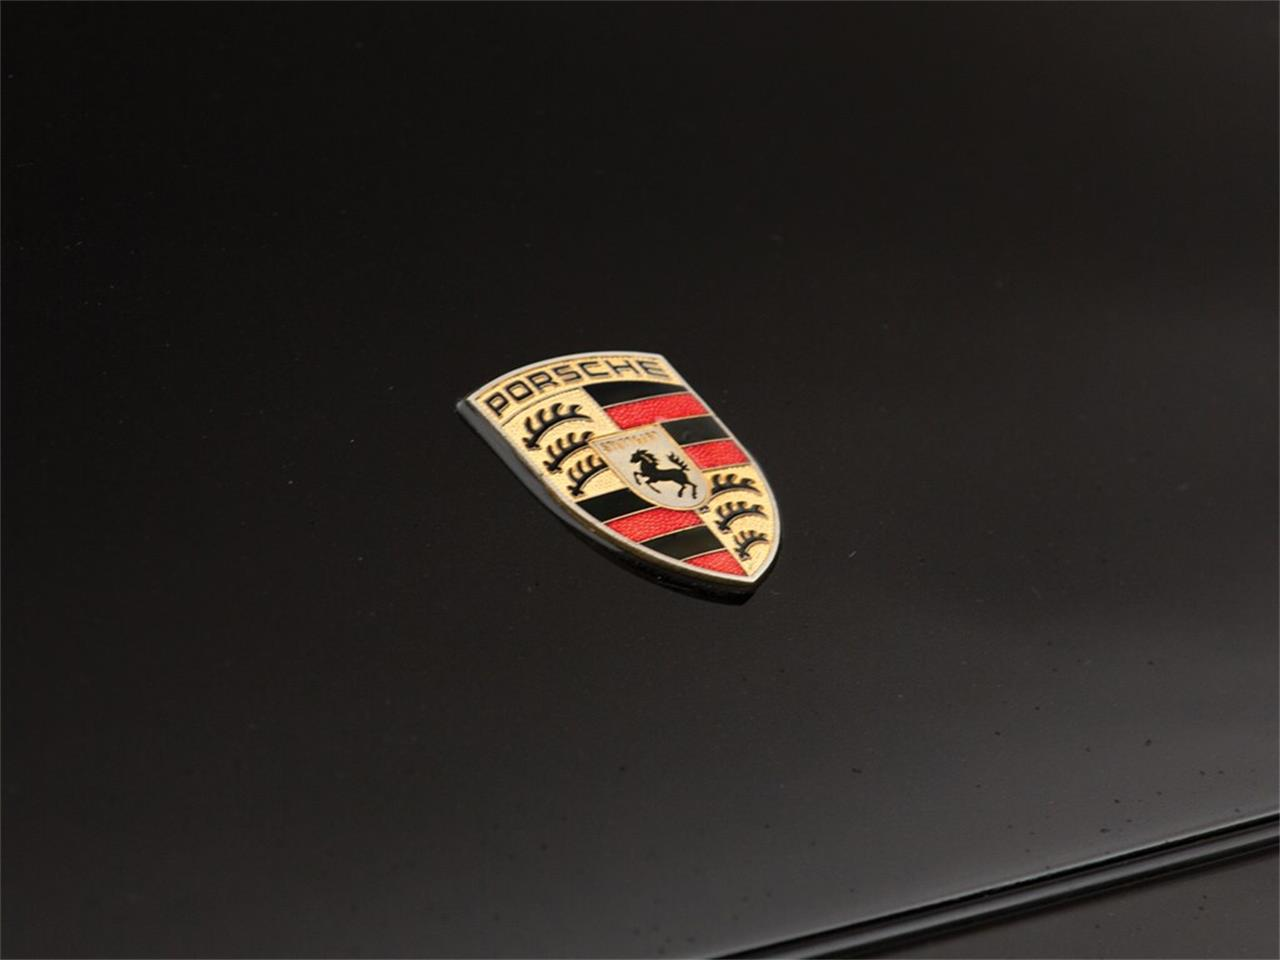 Large Picture of '96 911 Carrera 4S Auction Vehicle Offered by RM Sotheby's 781118 (remove ID# on next use) - QS9W